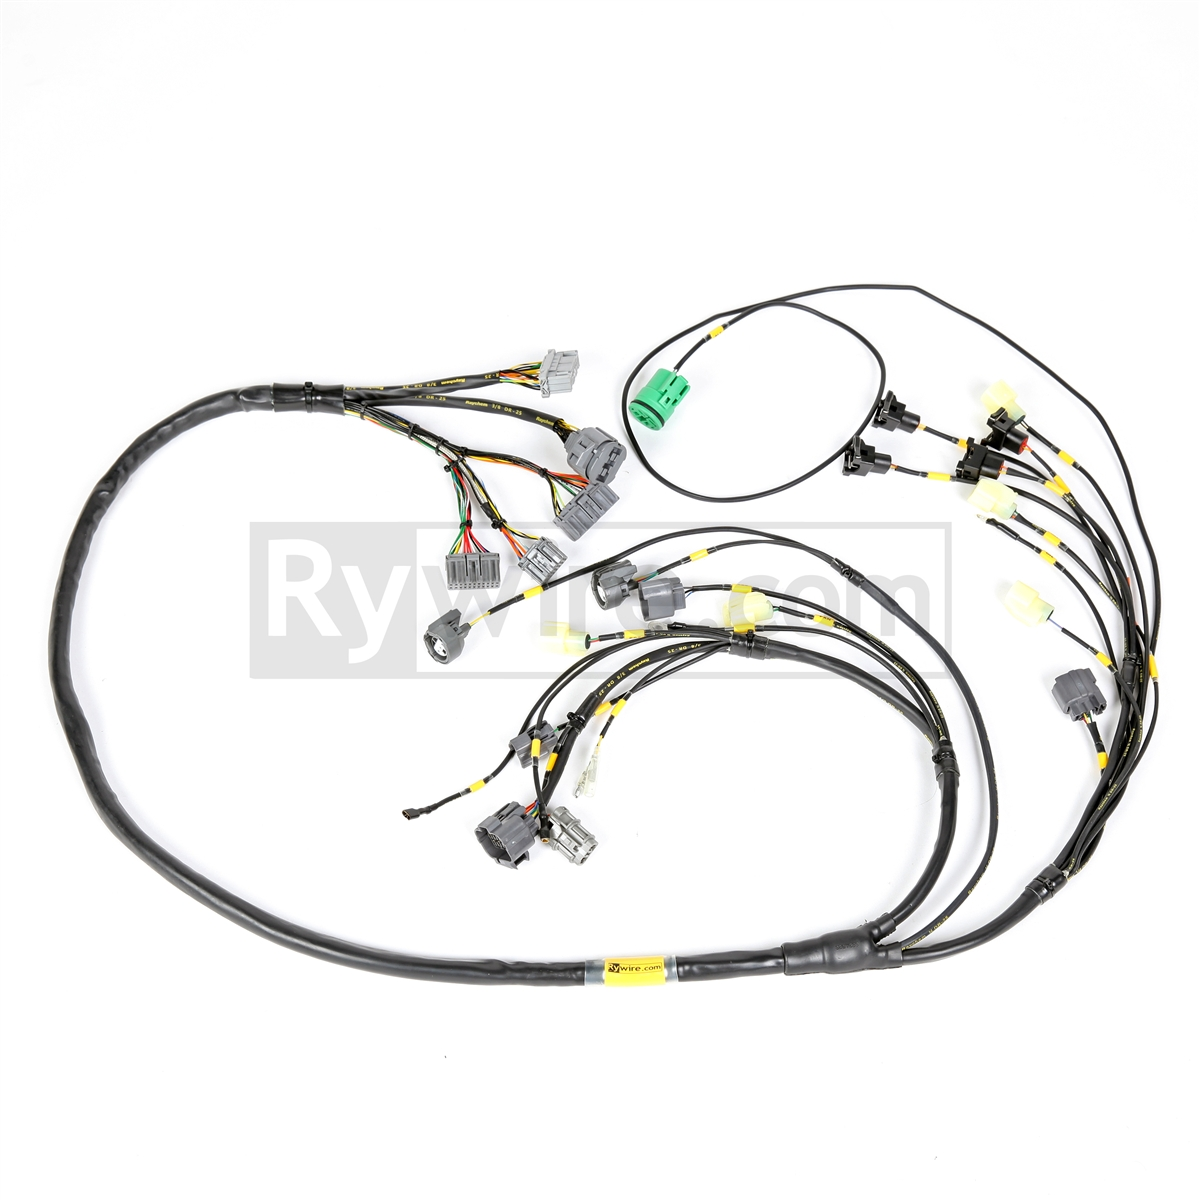 rywire com mil spec f series (f20b) & h series (h22) harness h22 accord wiring harness rywire mil spec f series & h series harness H22 Accord Wiring Harness